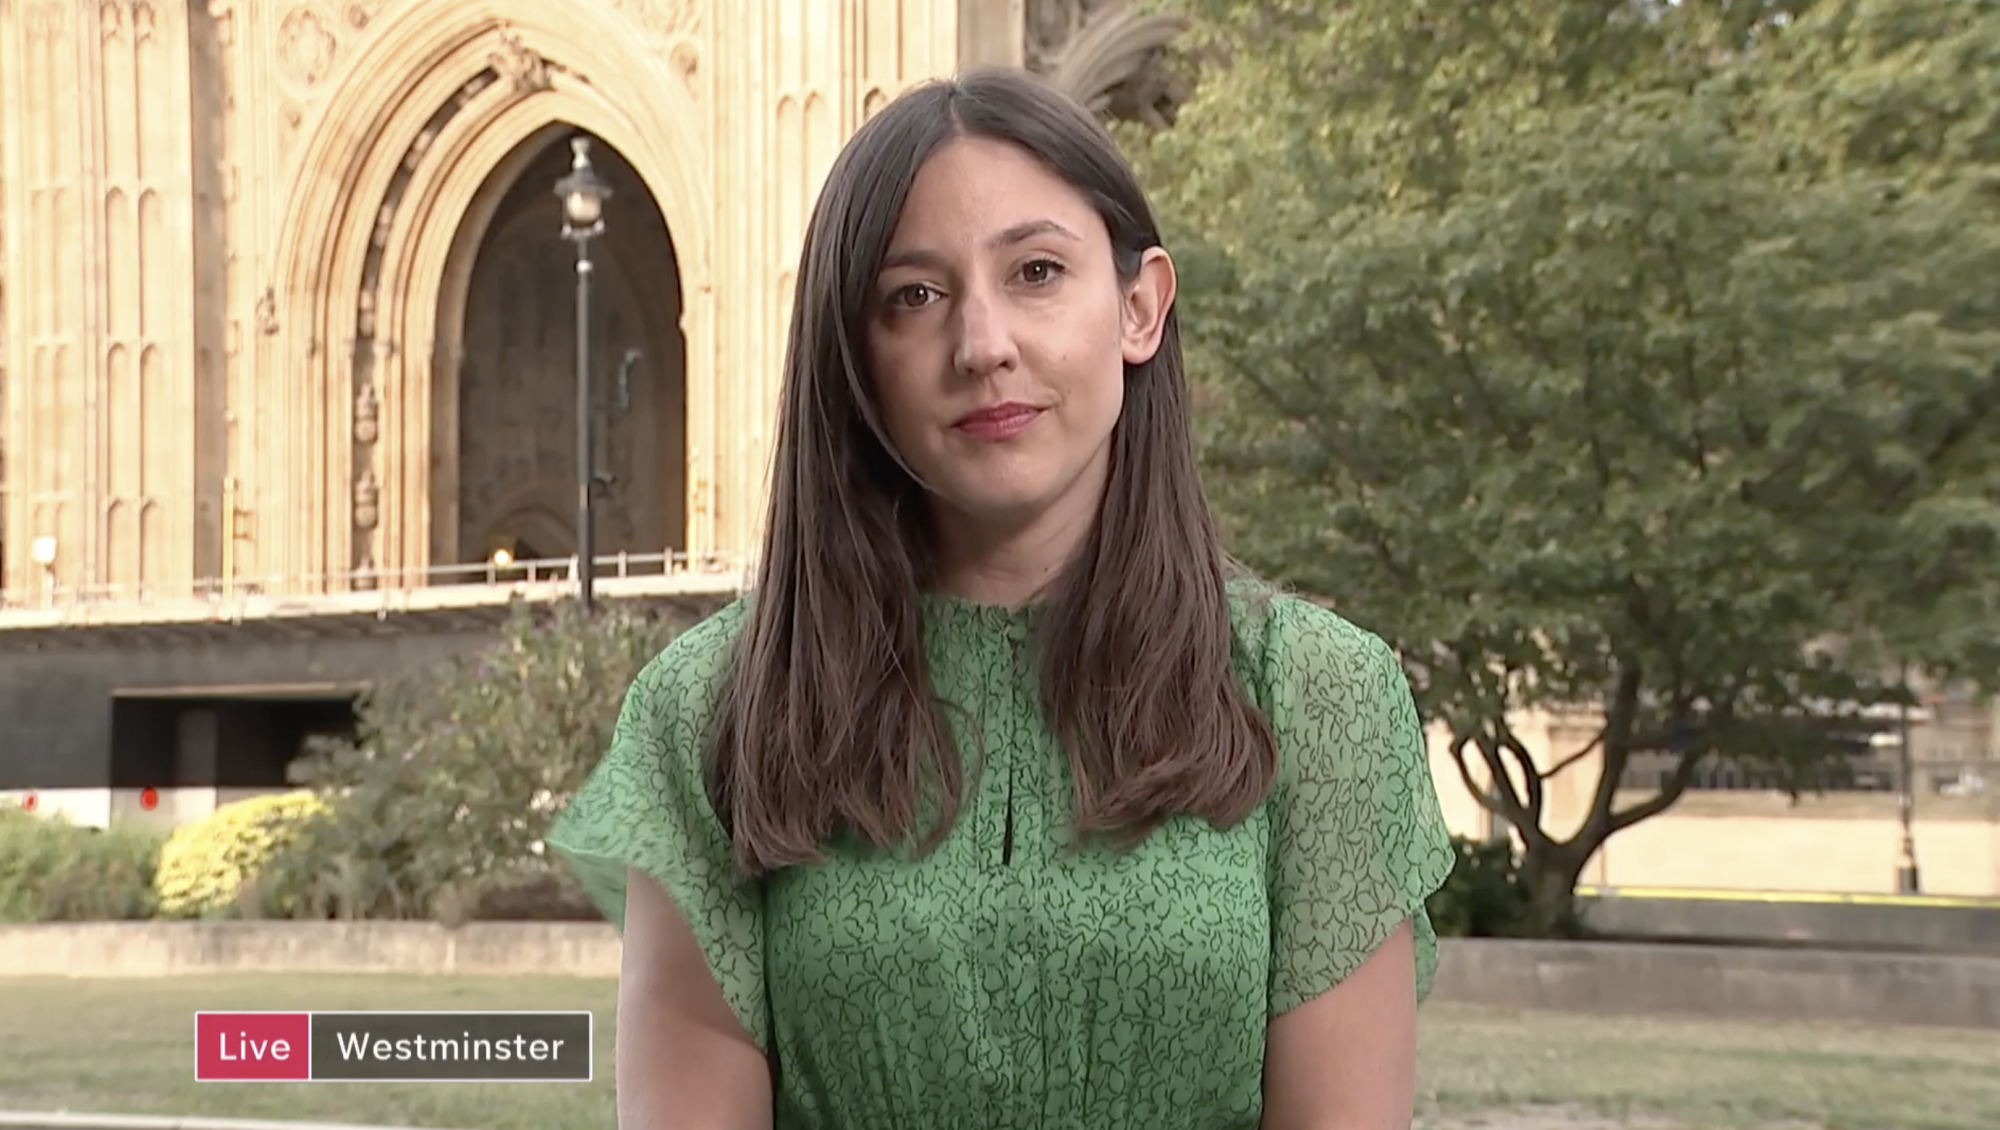 Tory Chief Whip says rape and sexual assault claims against MP taken 'very seriously' - channel 4